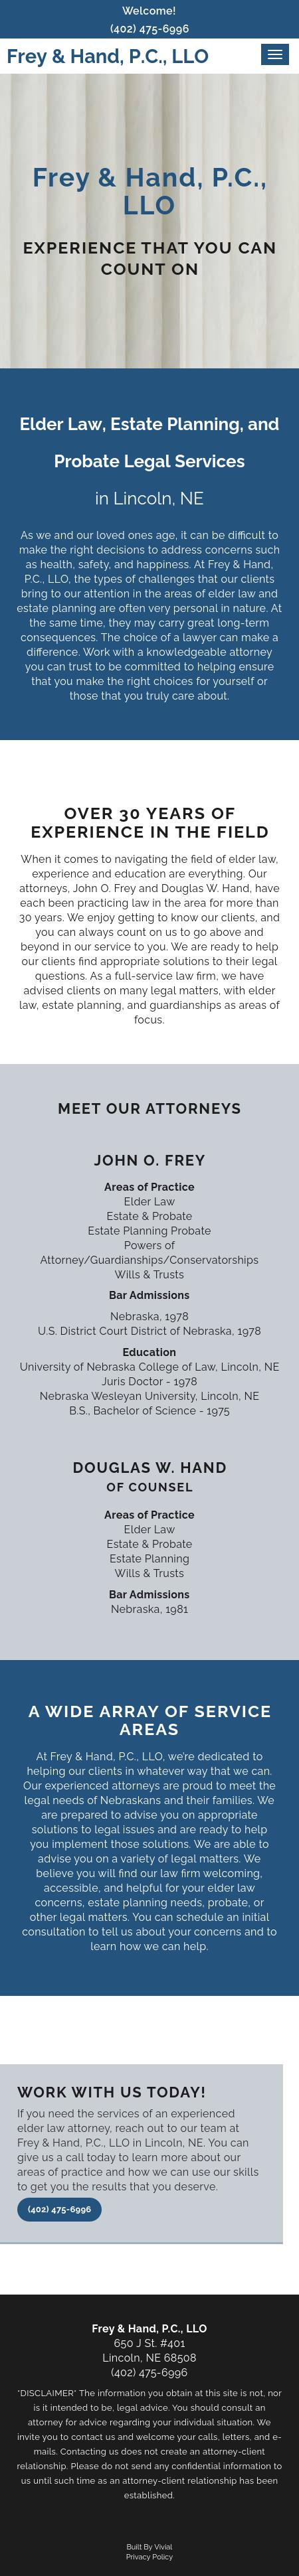 Frey & Hand - Lincoln NE Lawyers